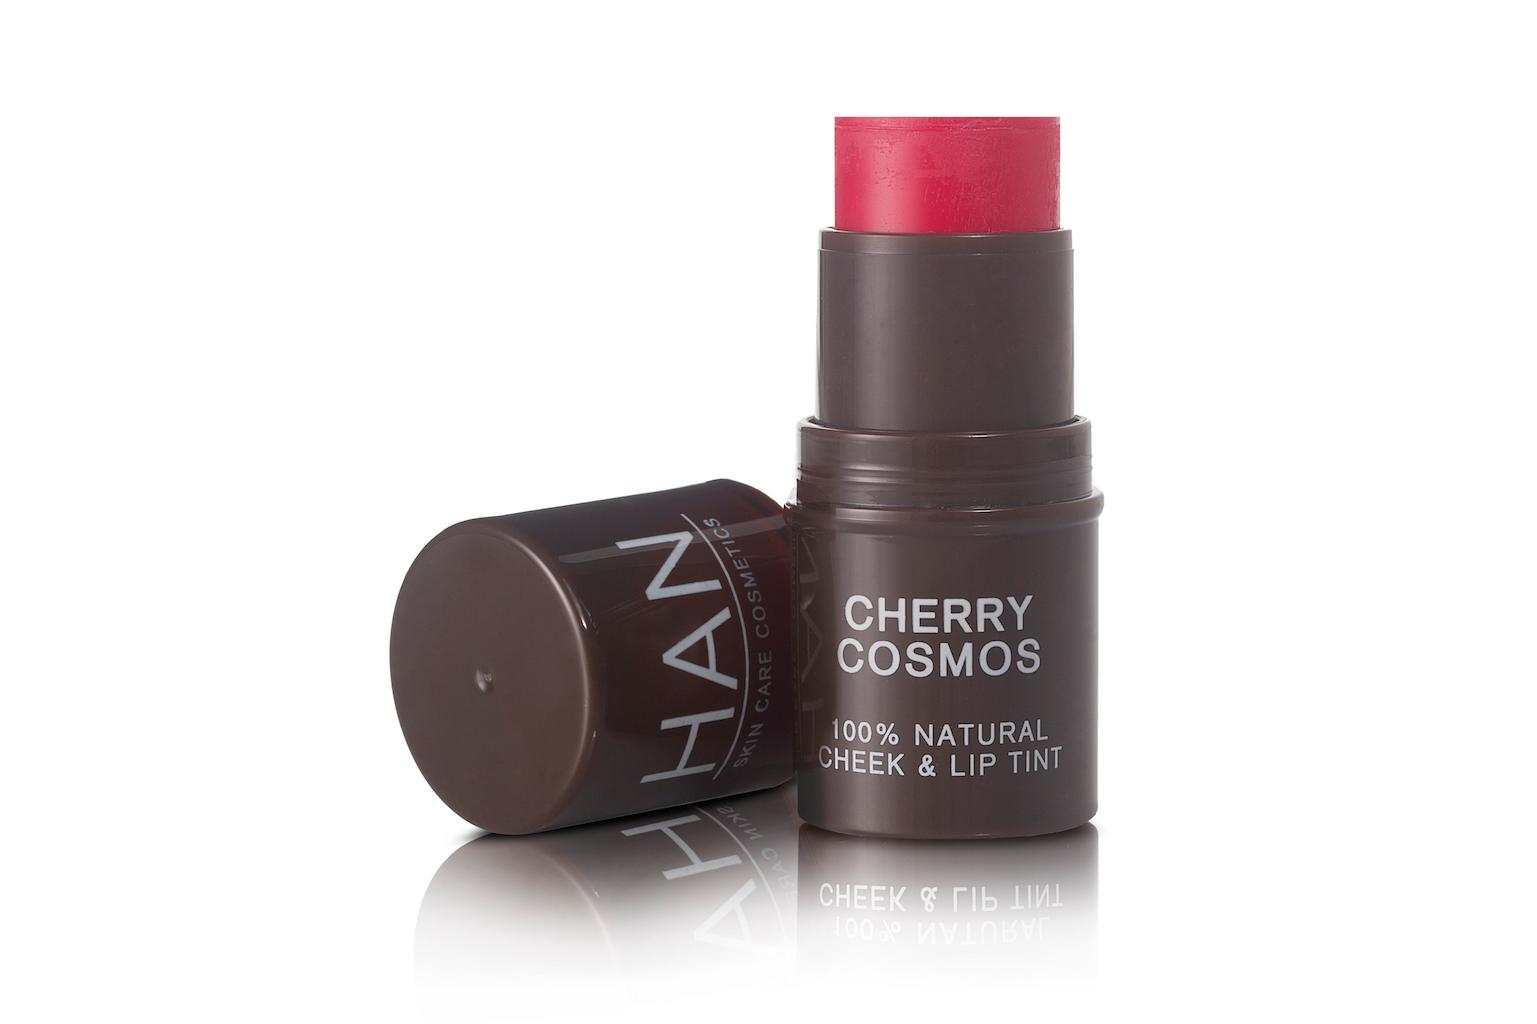 HAN Skin Care Cosmetics Cheek & Lip Tint - Cherry Cosmos